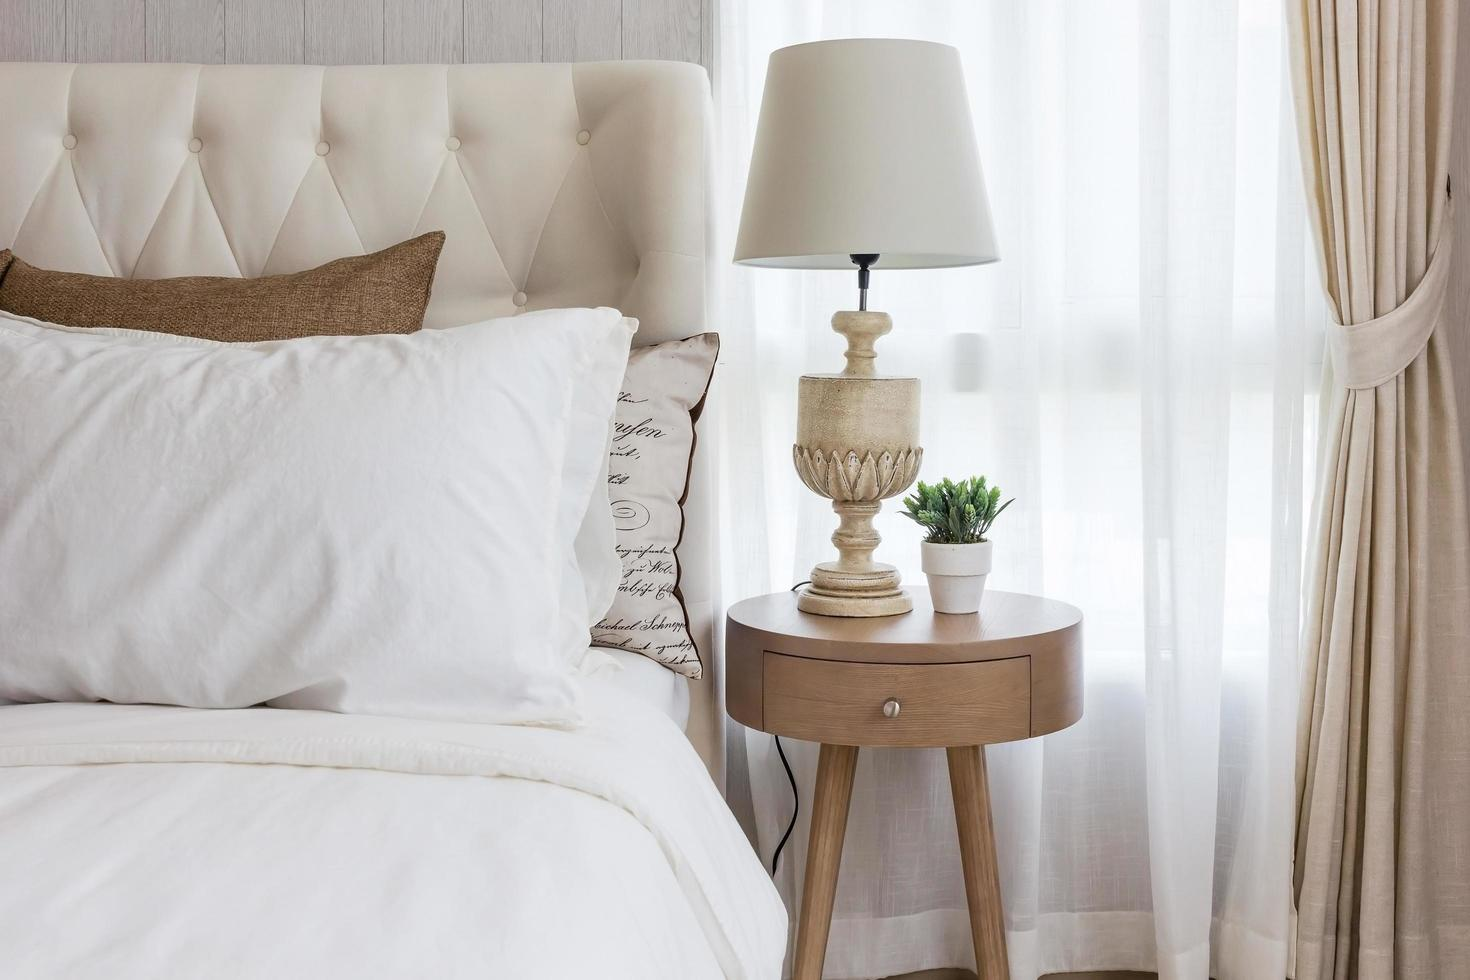 Nightstand with a lamp photo